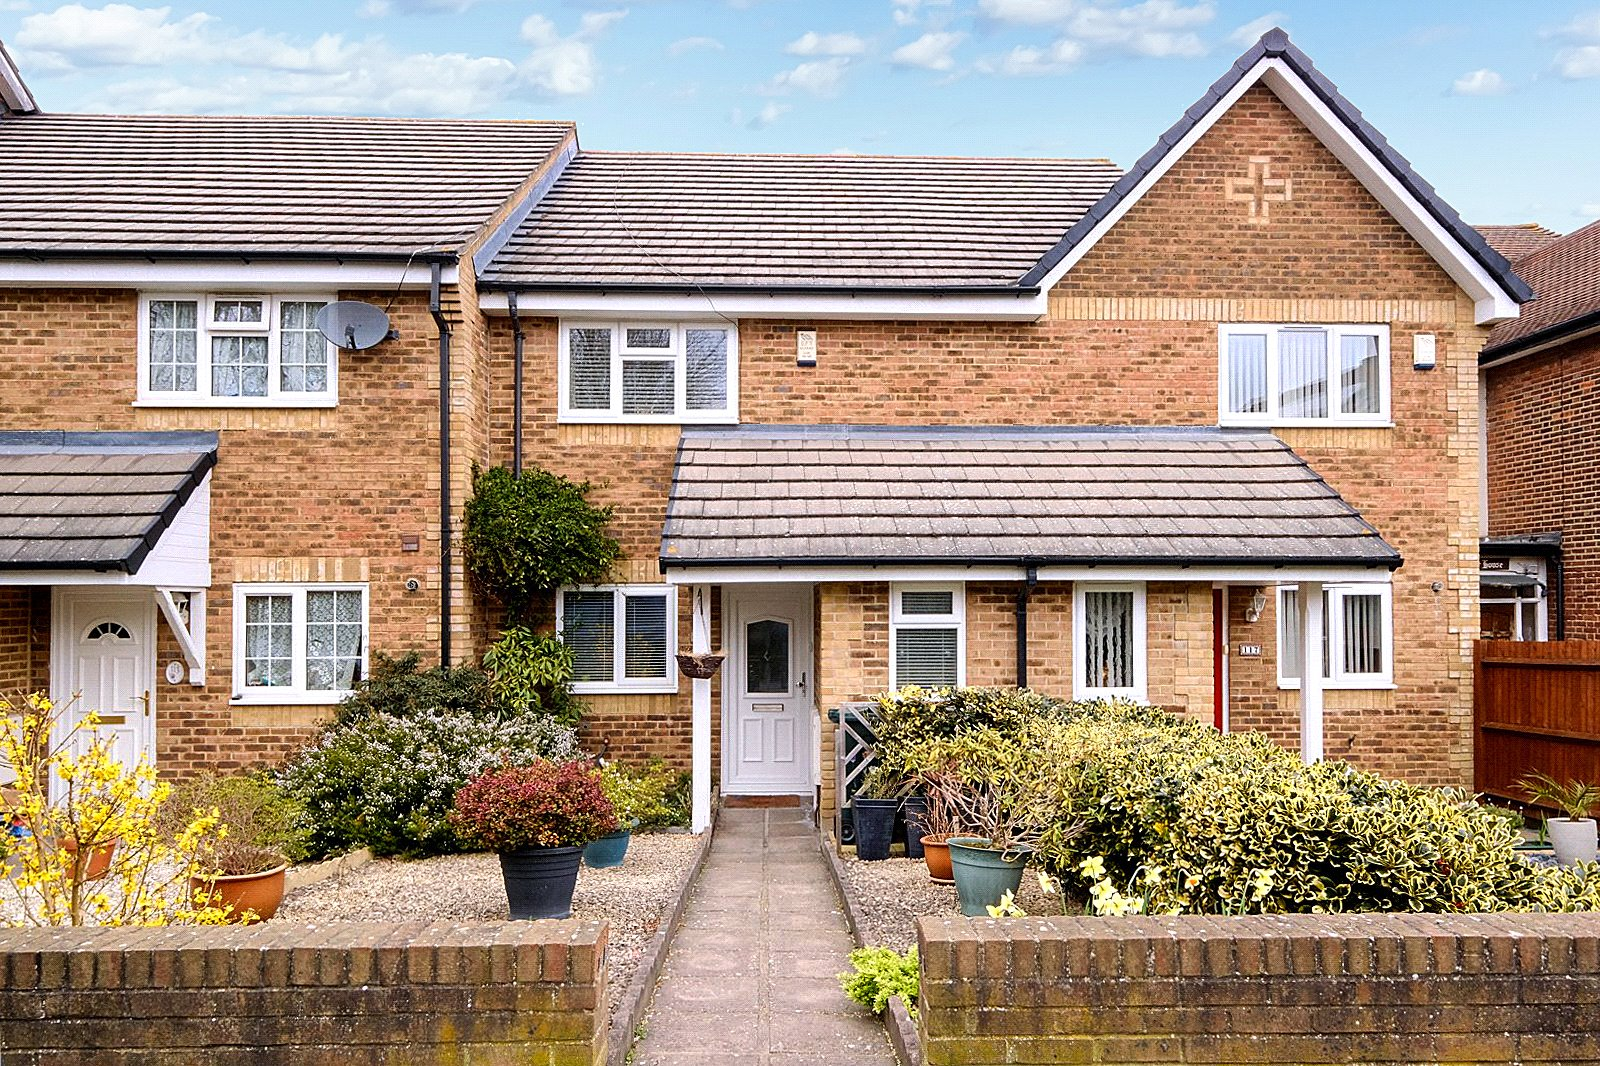 Hedge Place Road, Greenhithe, DA9